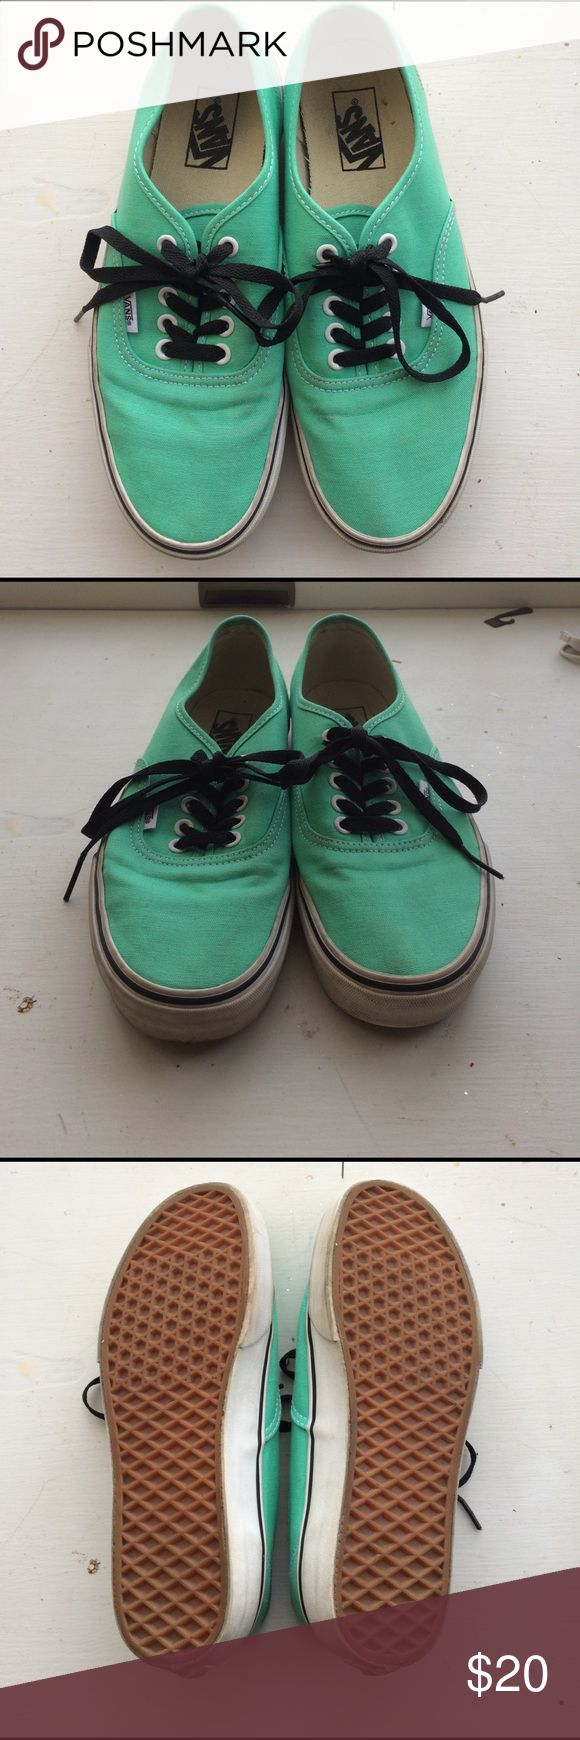 Mint Green Vans Super cute Vans that add a nice pop of color to any outfit!! Worn a few times so there are a few marks shown in the pictures! Vans Shoes Sneakers